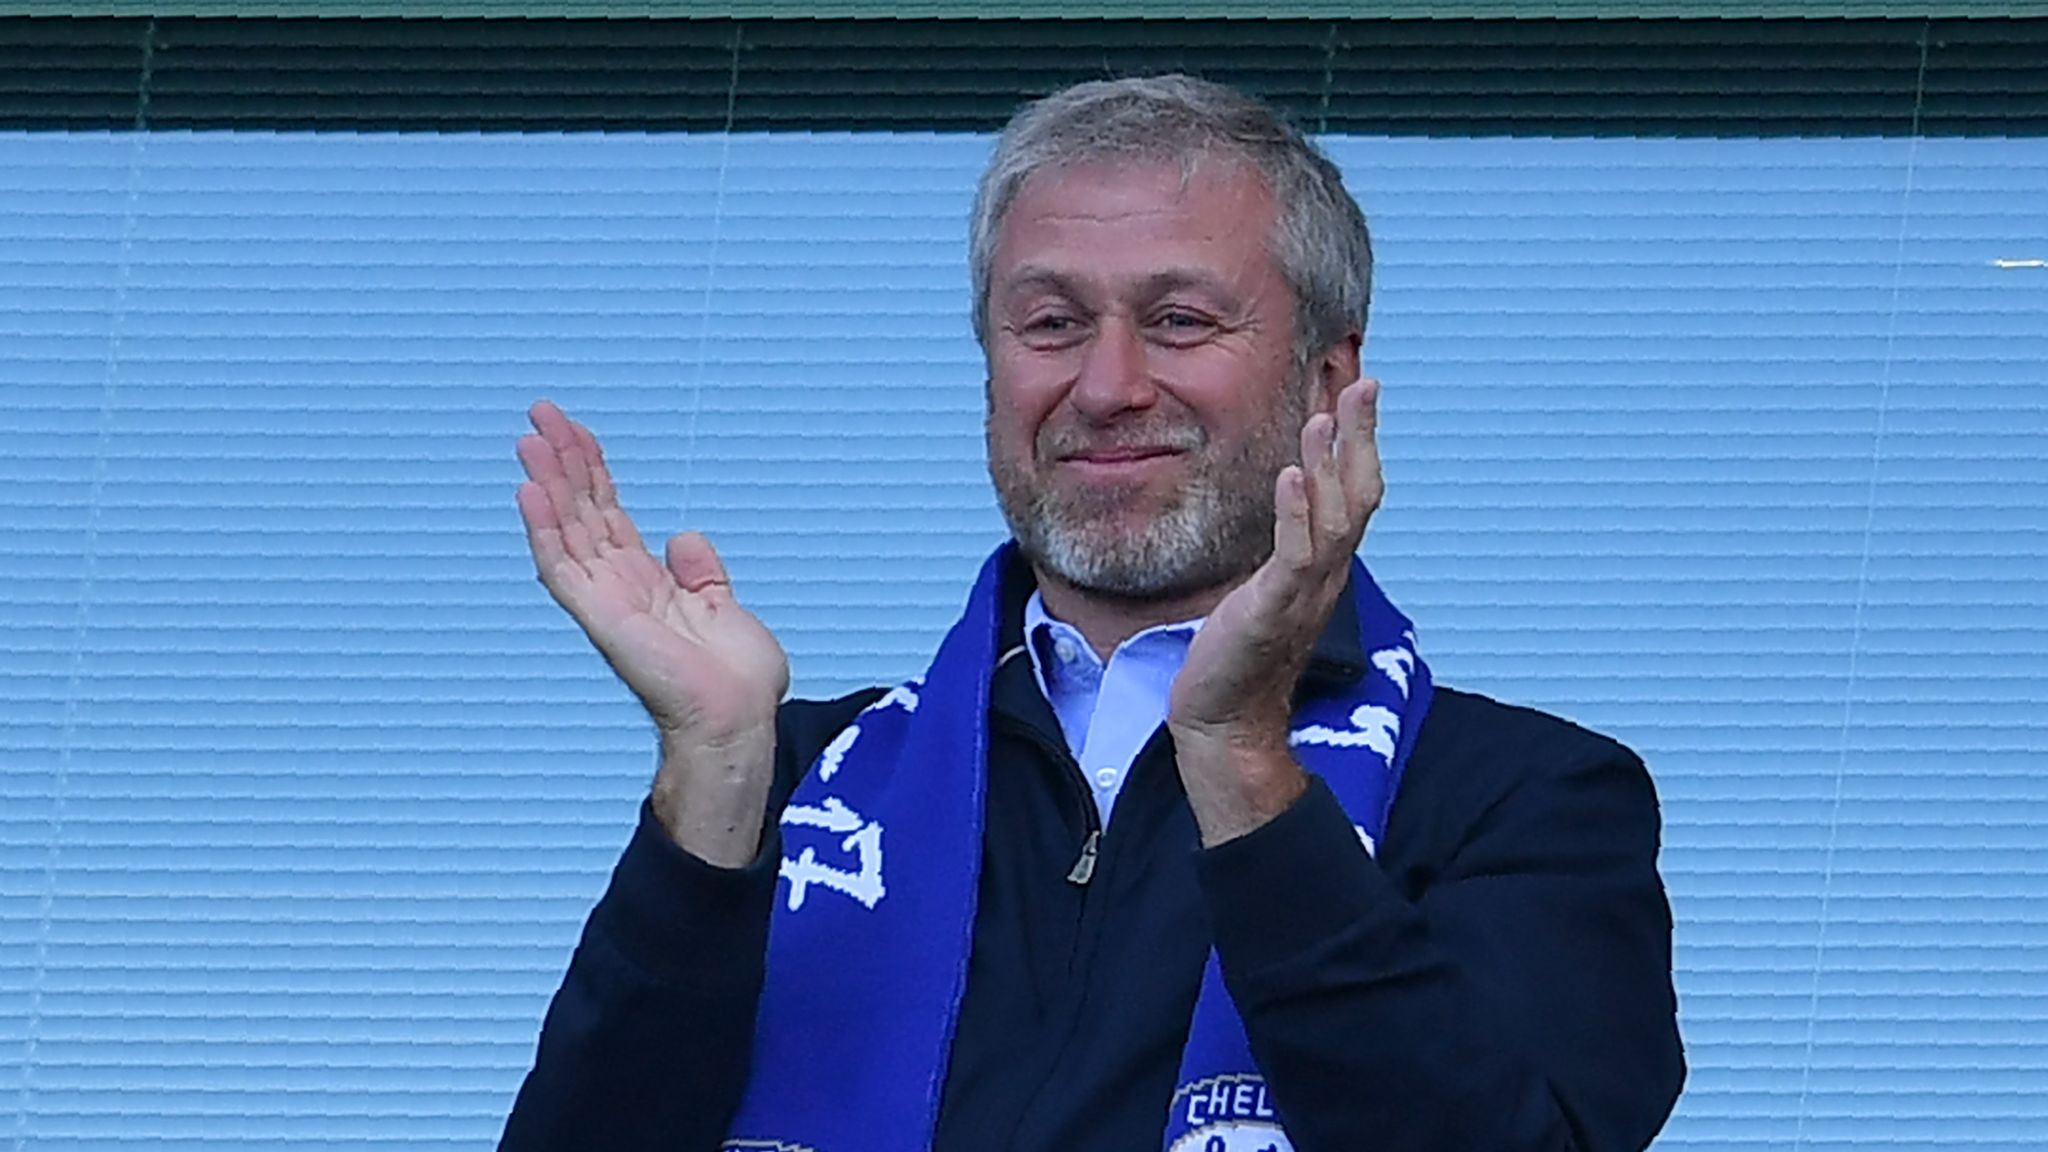 Russian tycoon Roman Abramovich can enter UK on visitor visa but cannot  work, PM says | World News | Sky News